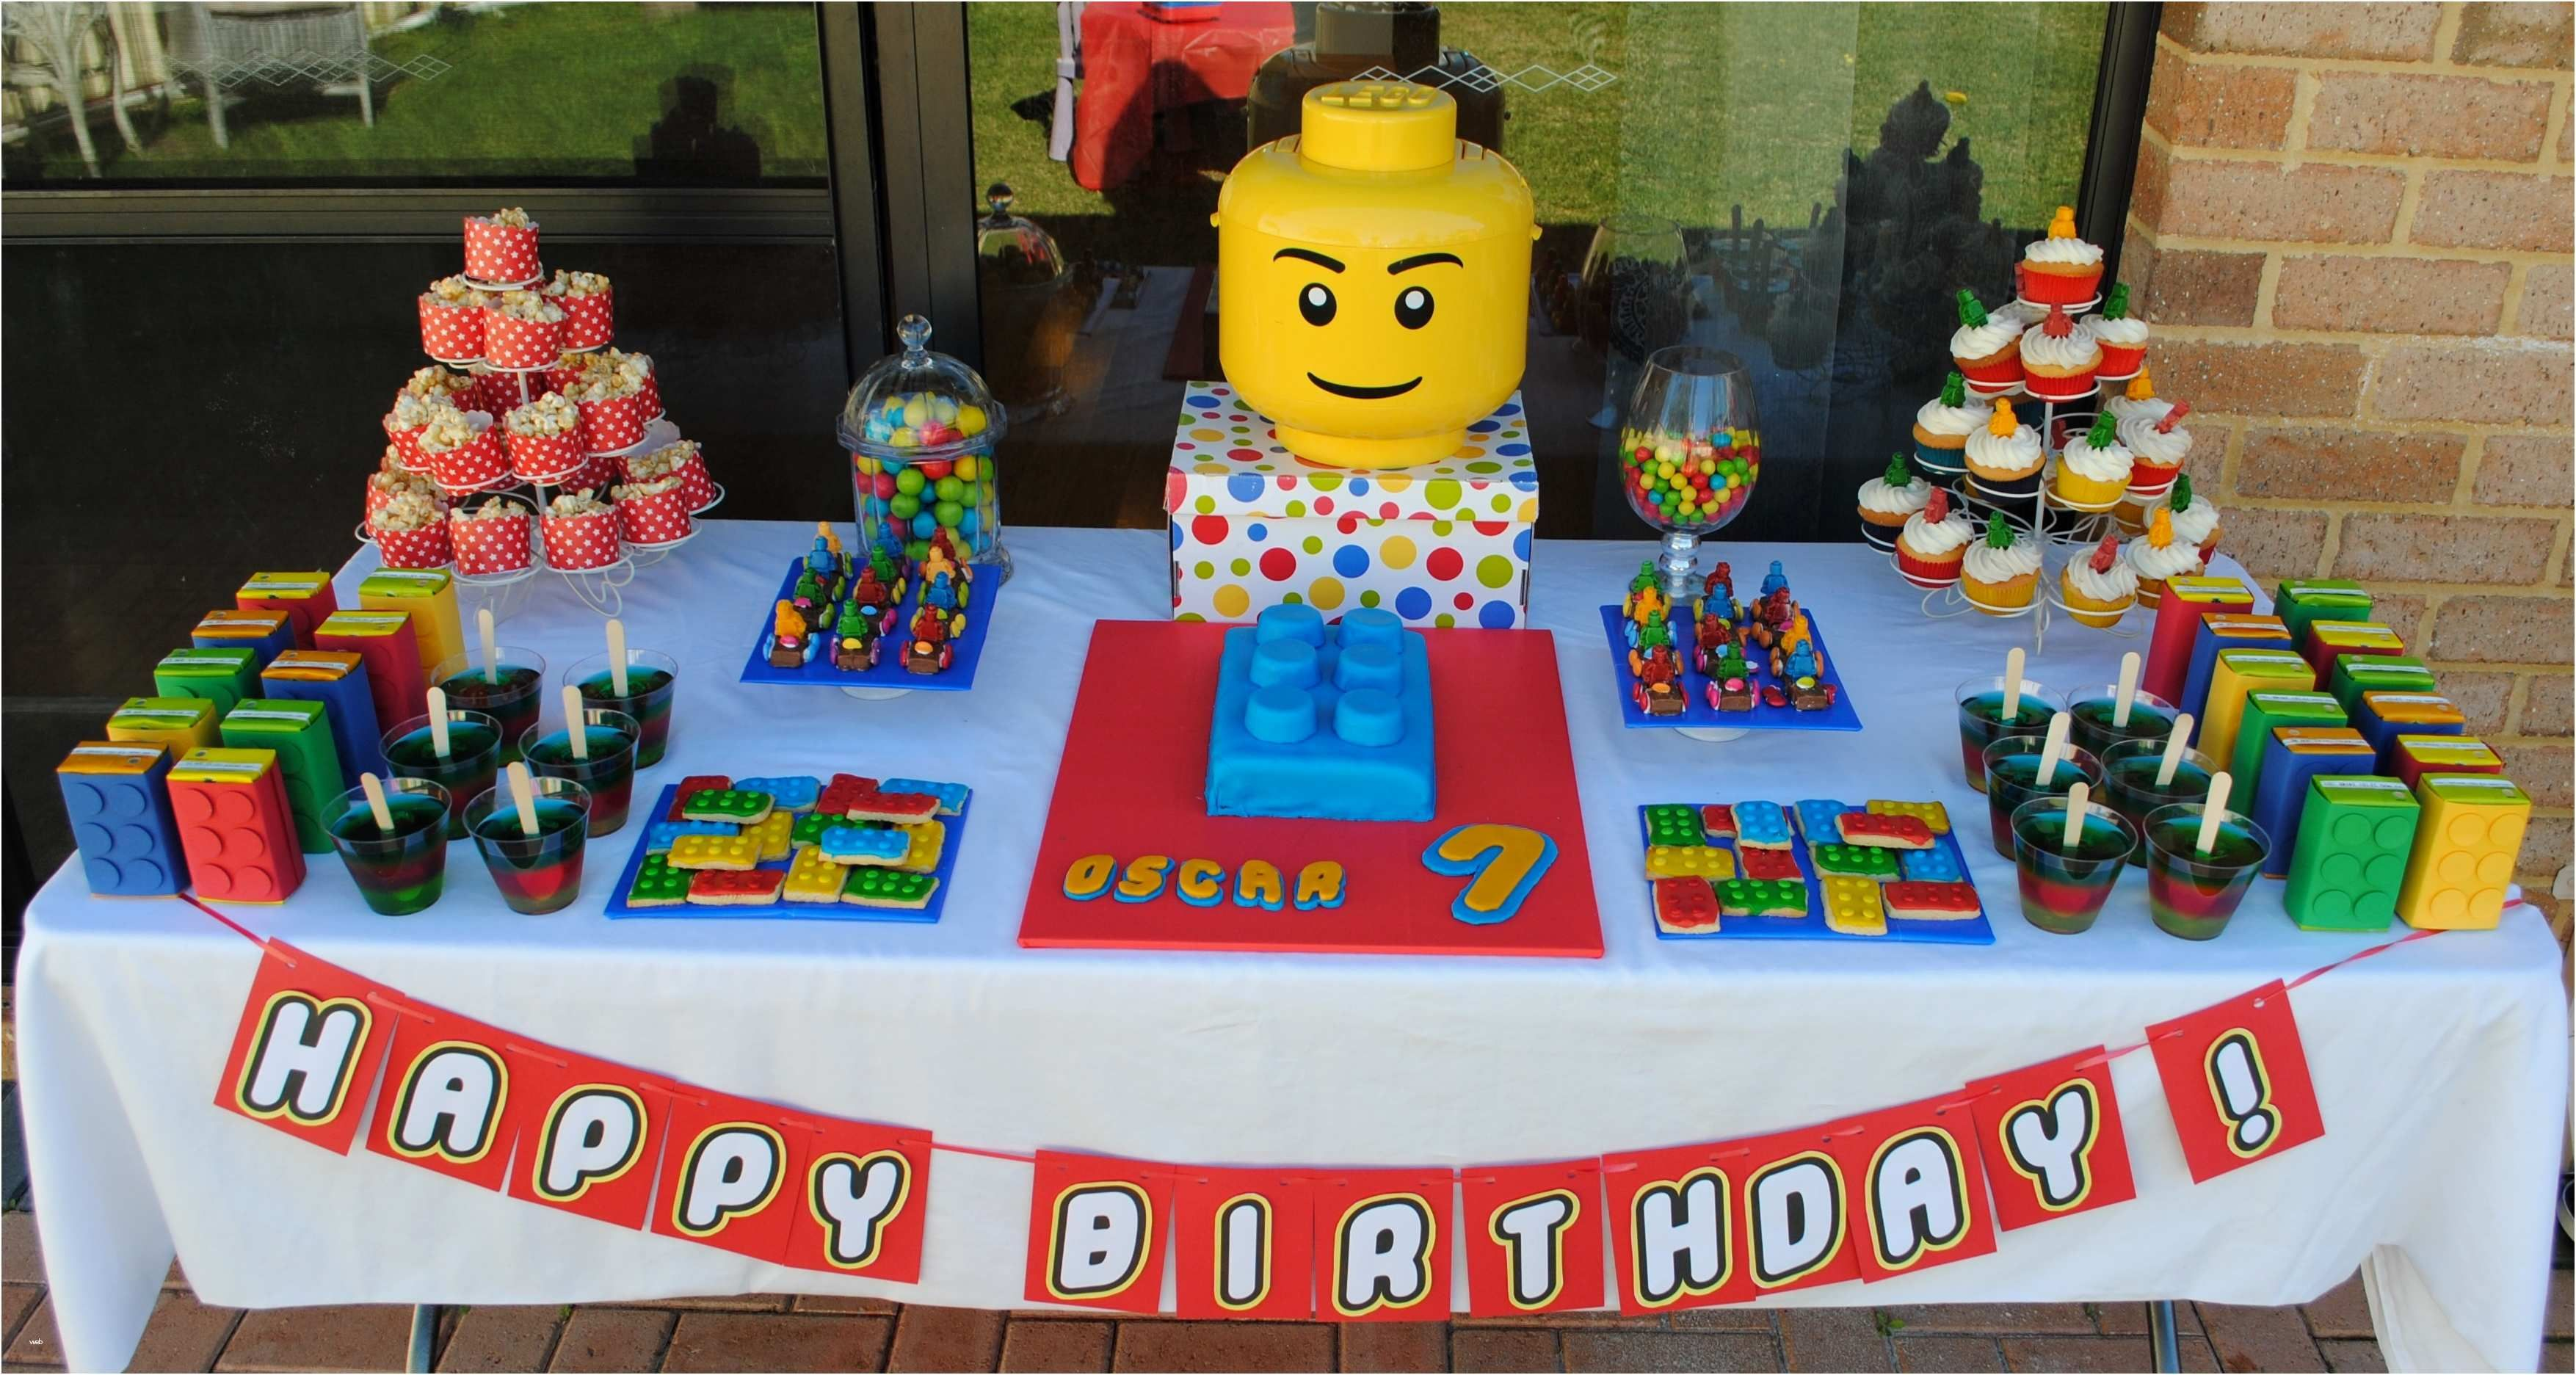 love cake decorating ideas elitflat.htm ninjago themed birthday party elegant lego cake decorating ideas  themed birthday party elegant lego